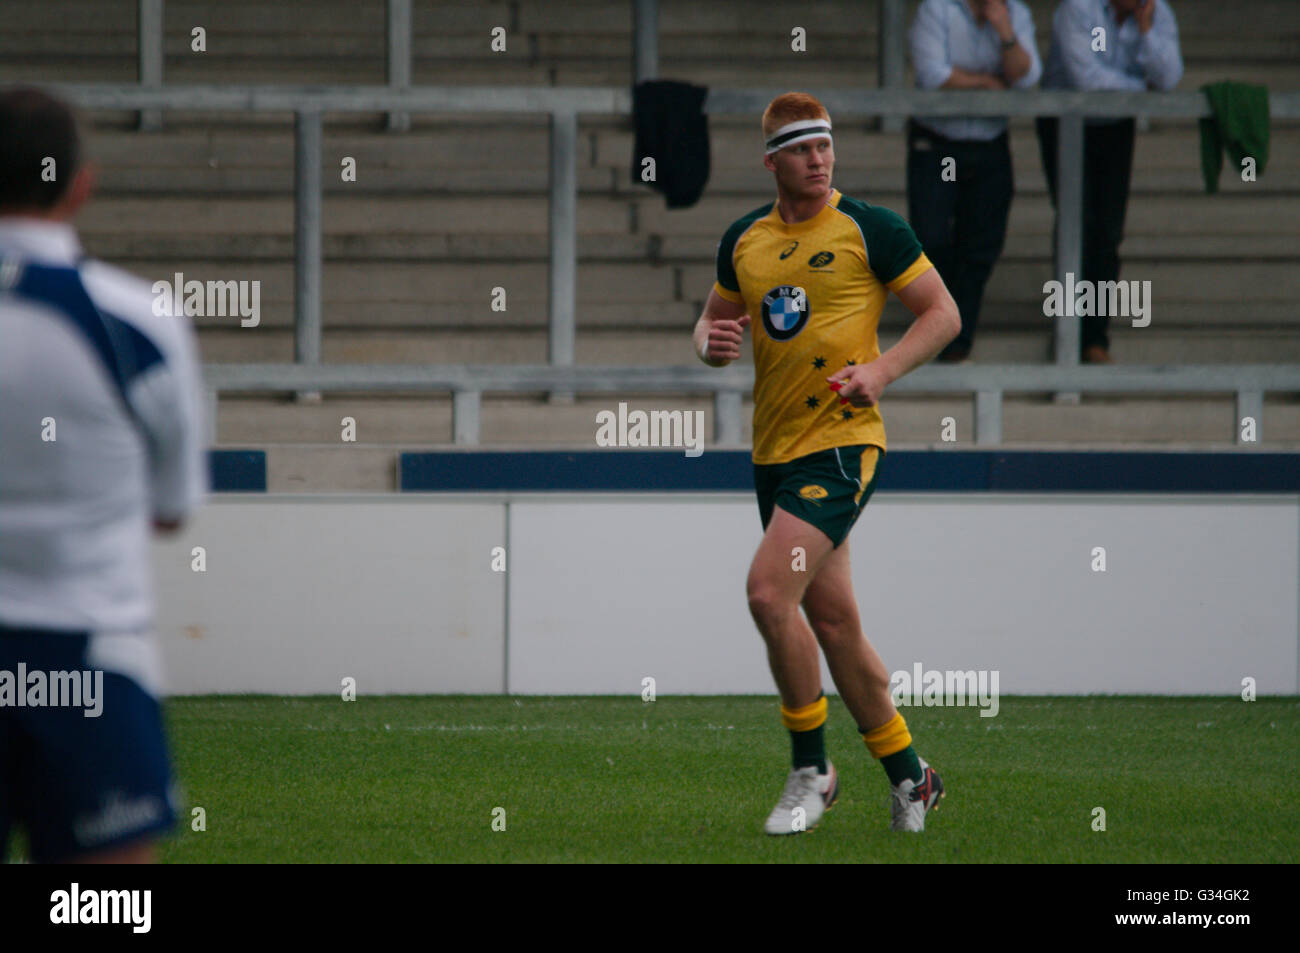 Salford, UK, 7 June 2016. Campbell Magnay of Australia leaving the pitch after being sent off after four minutes - Stock Image